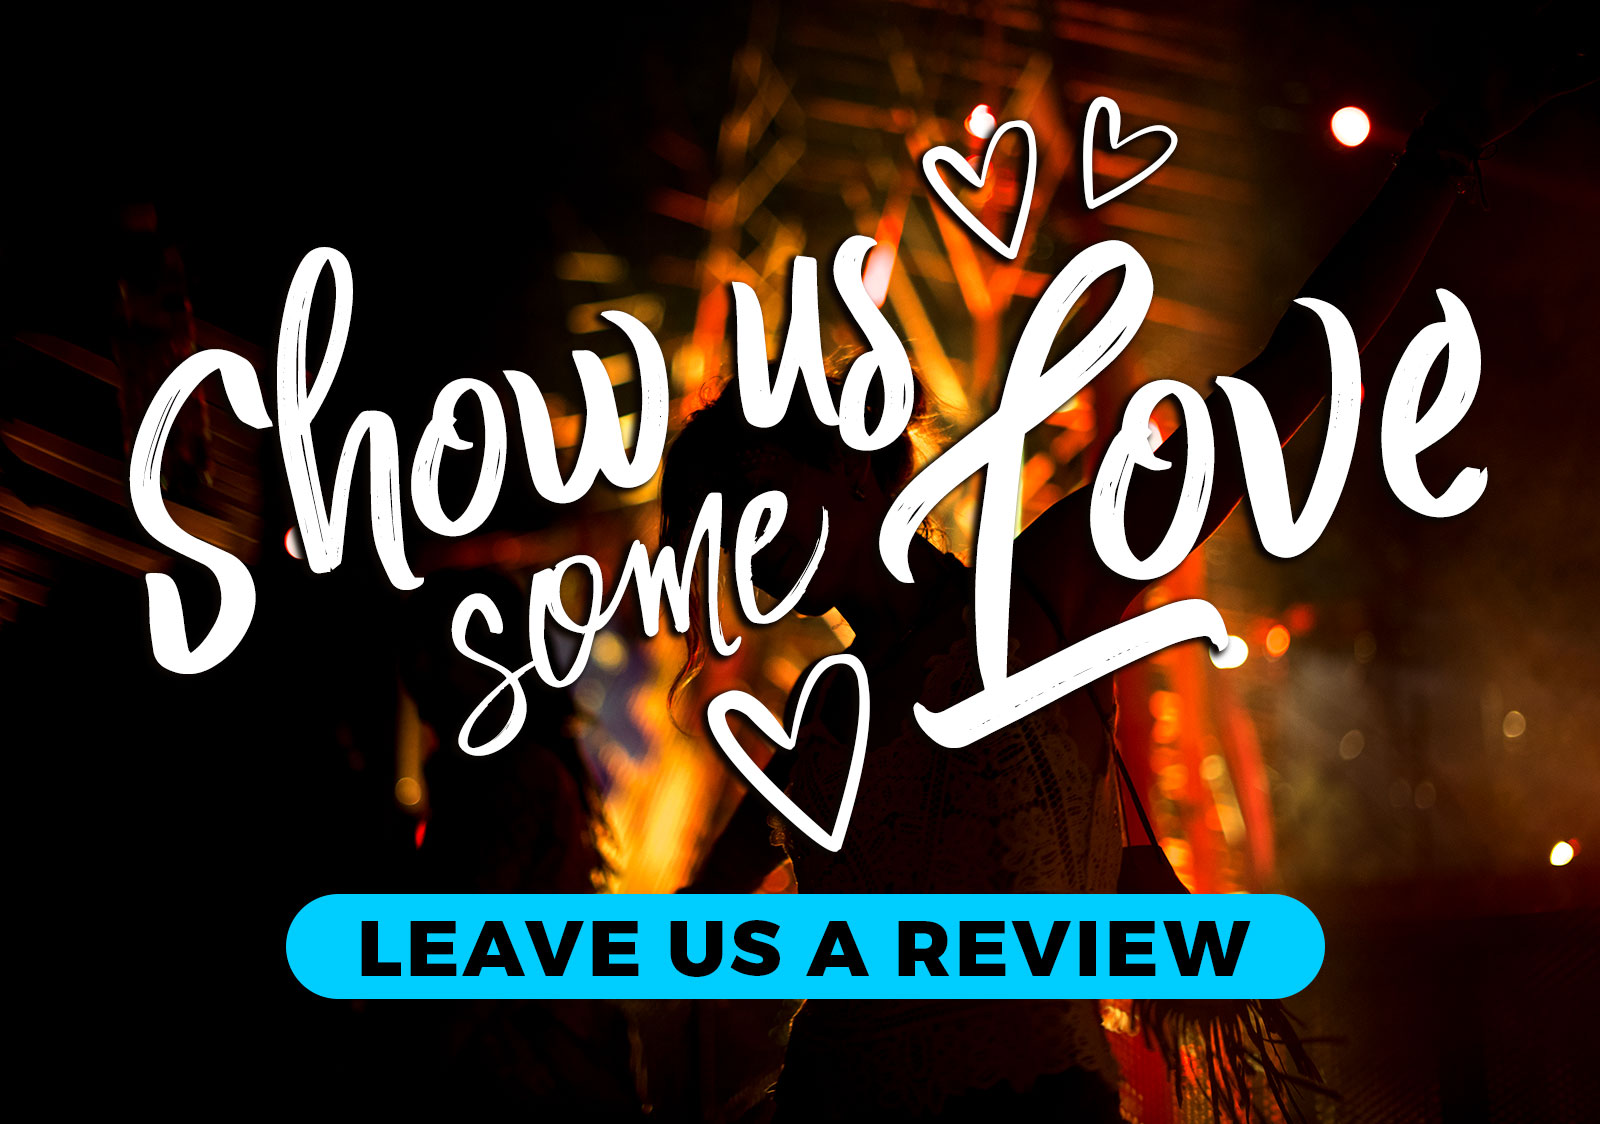 Leave a review for Soul Vegetarian